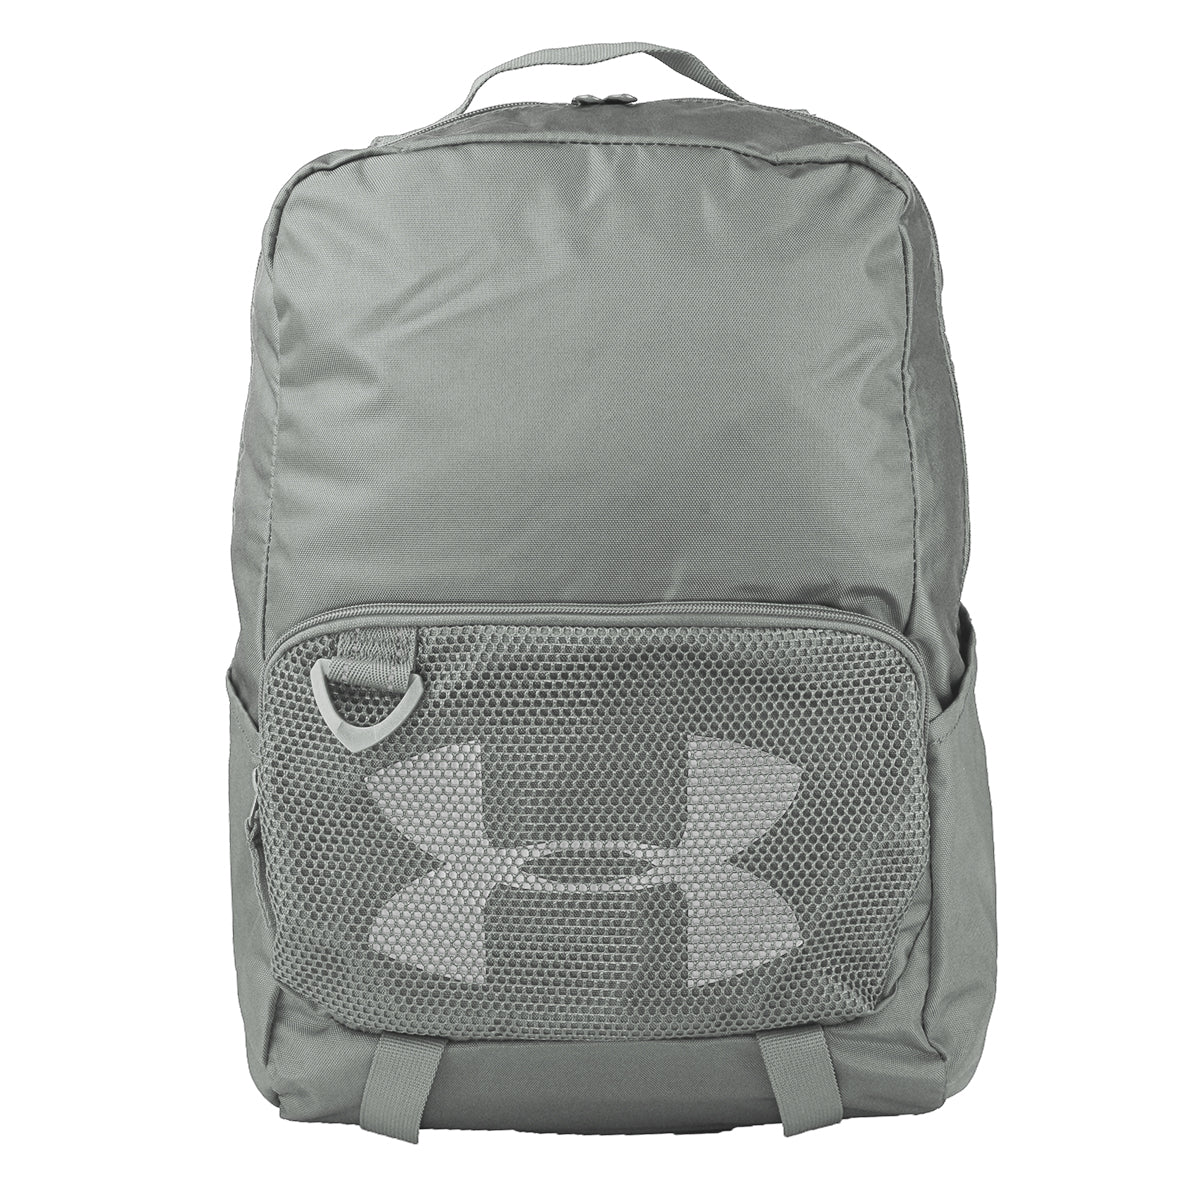 Steel Under Armour Bags